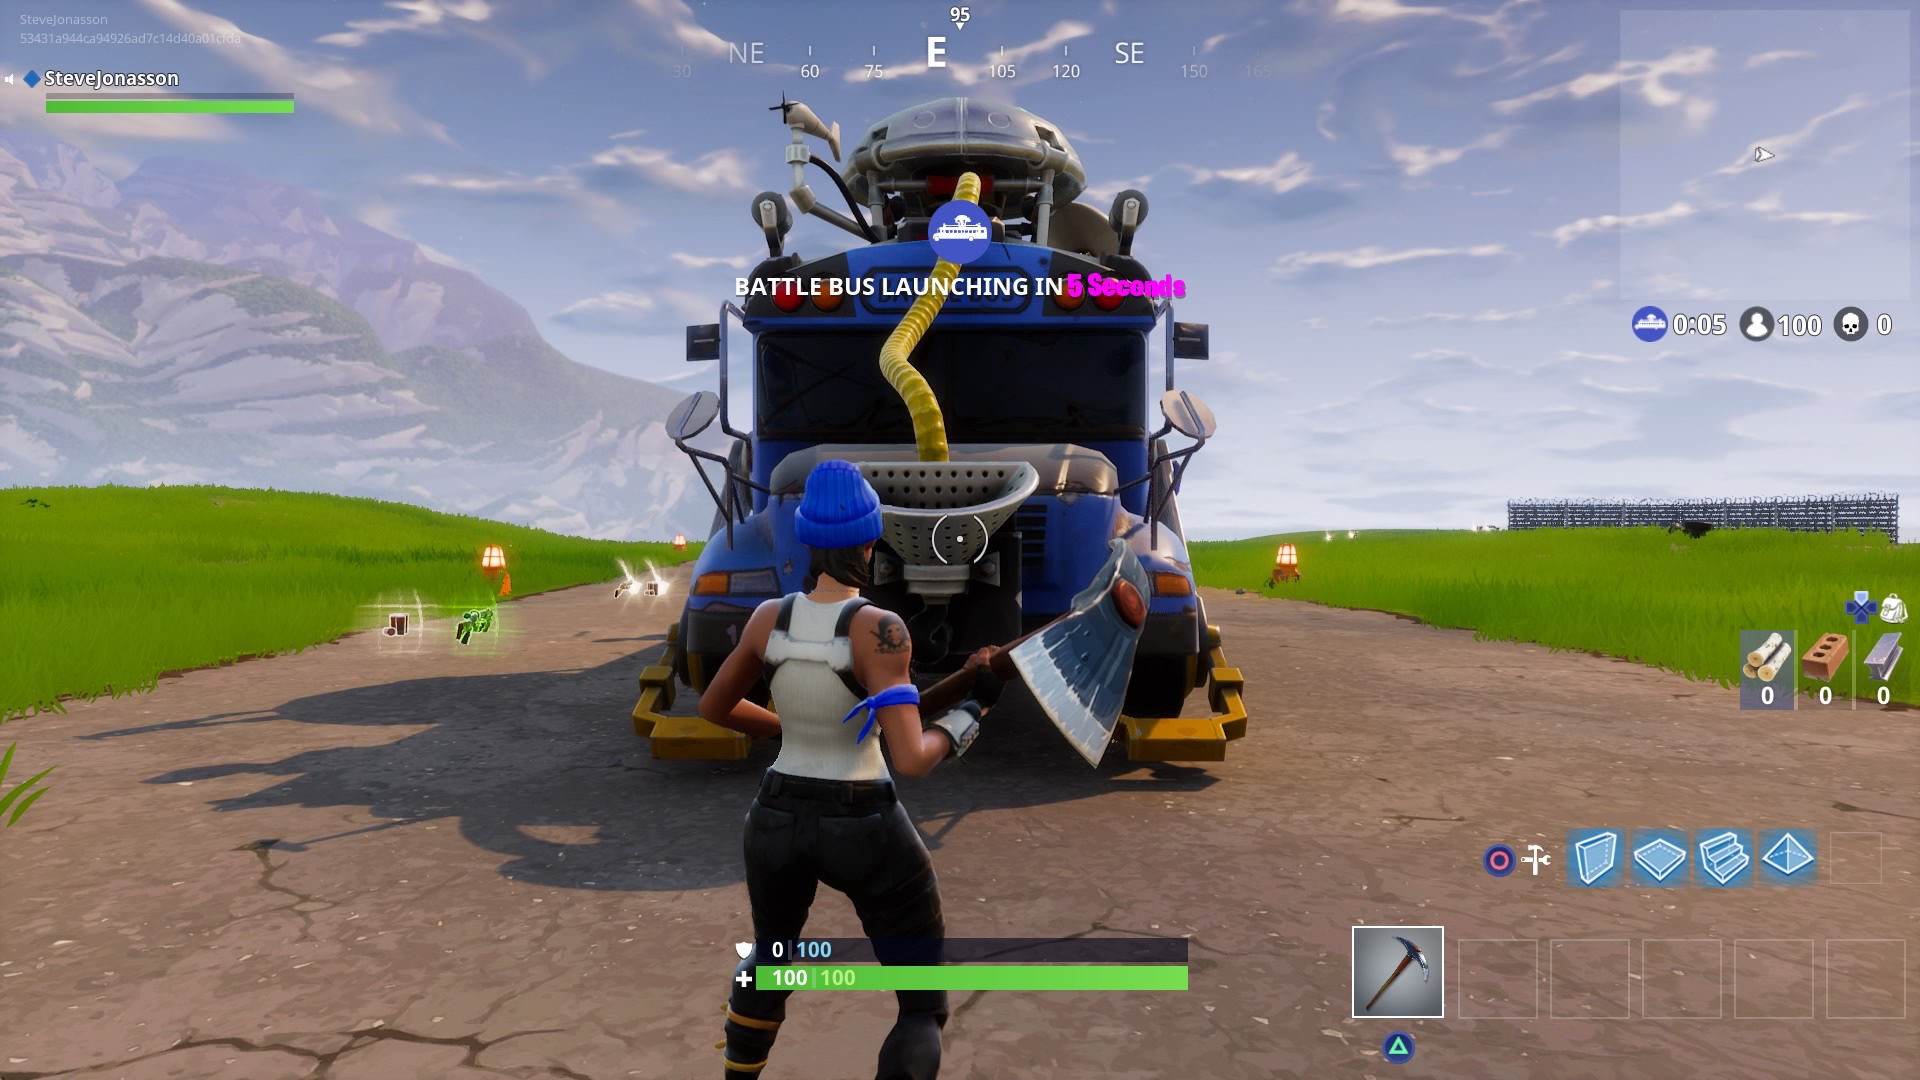 Party bus in Fortnite